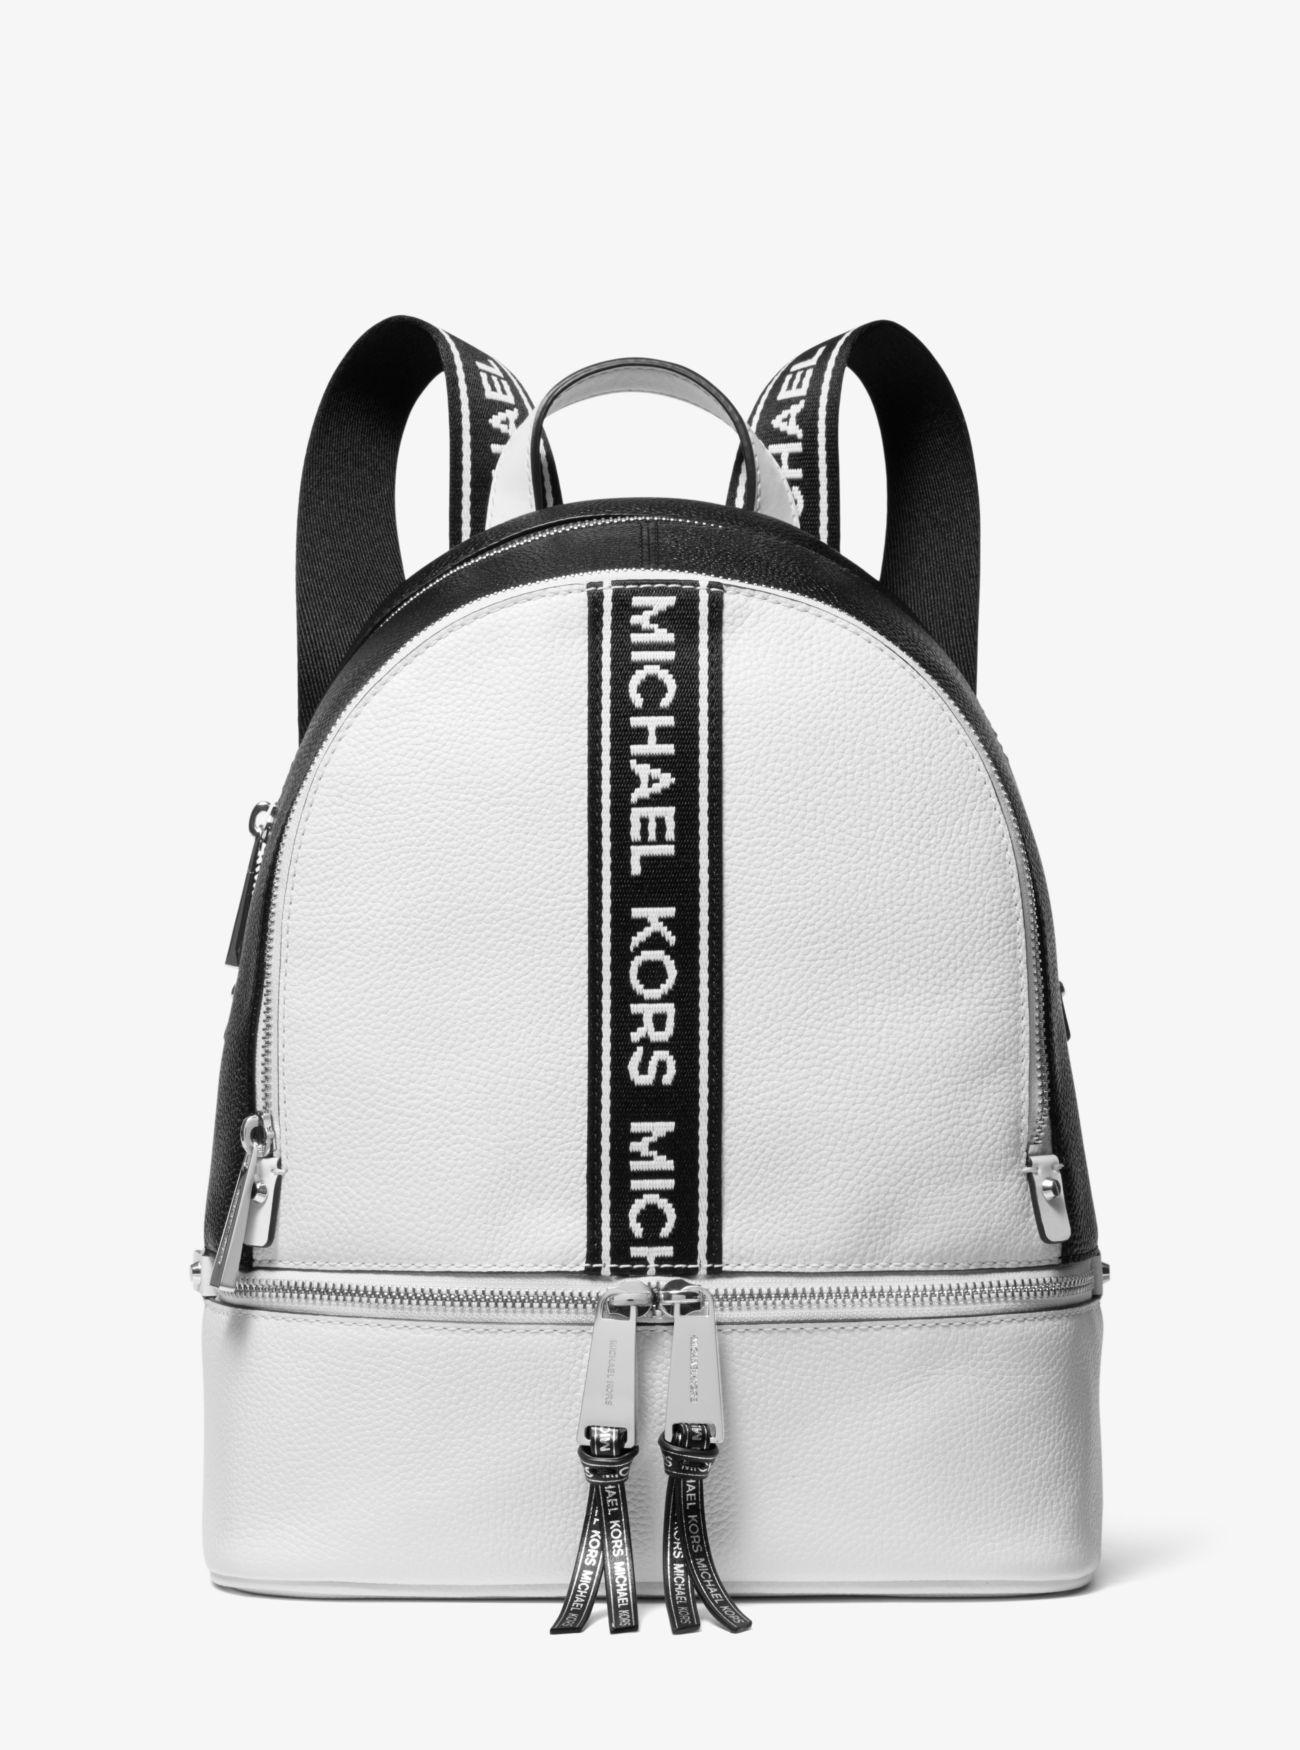 842c56ec59e6 Michael Kors Rhea Medium Logo Tape Backpack in White - Lyst